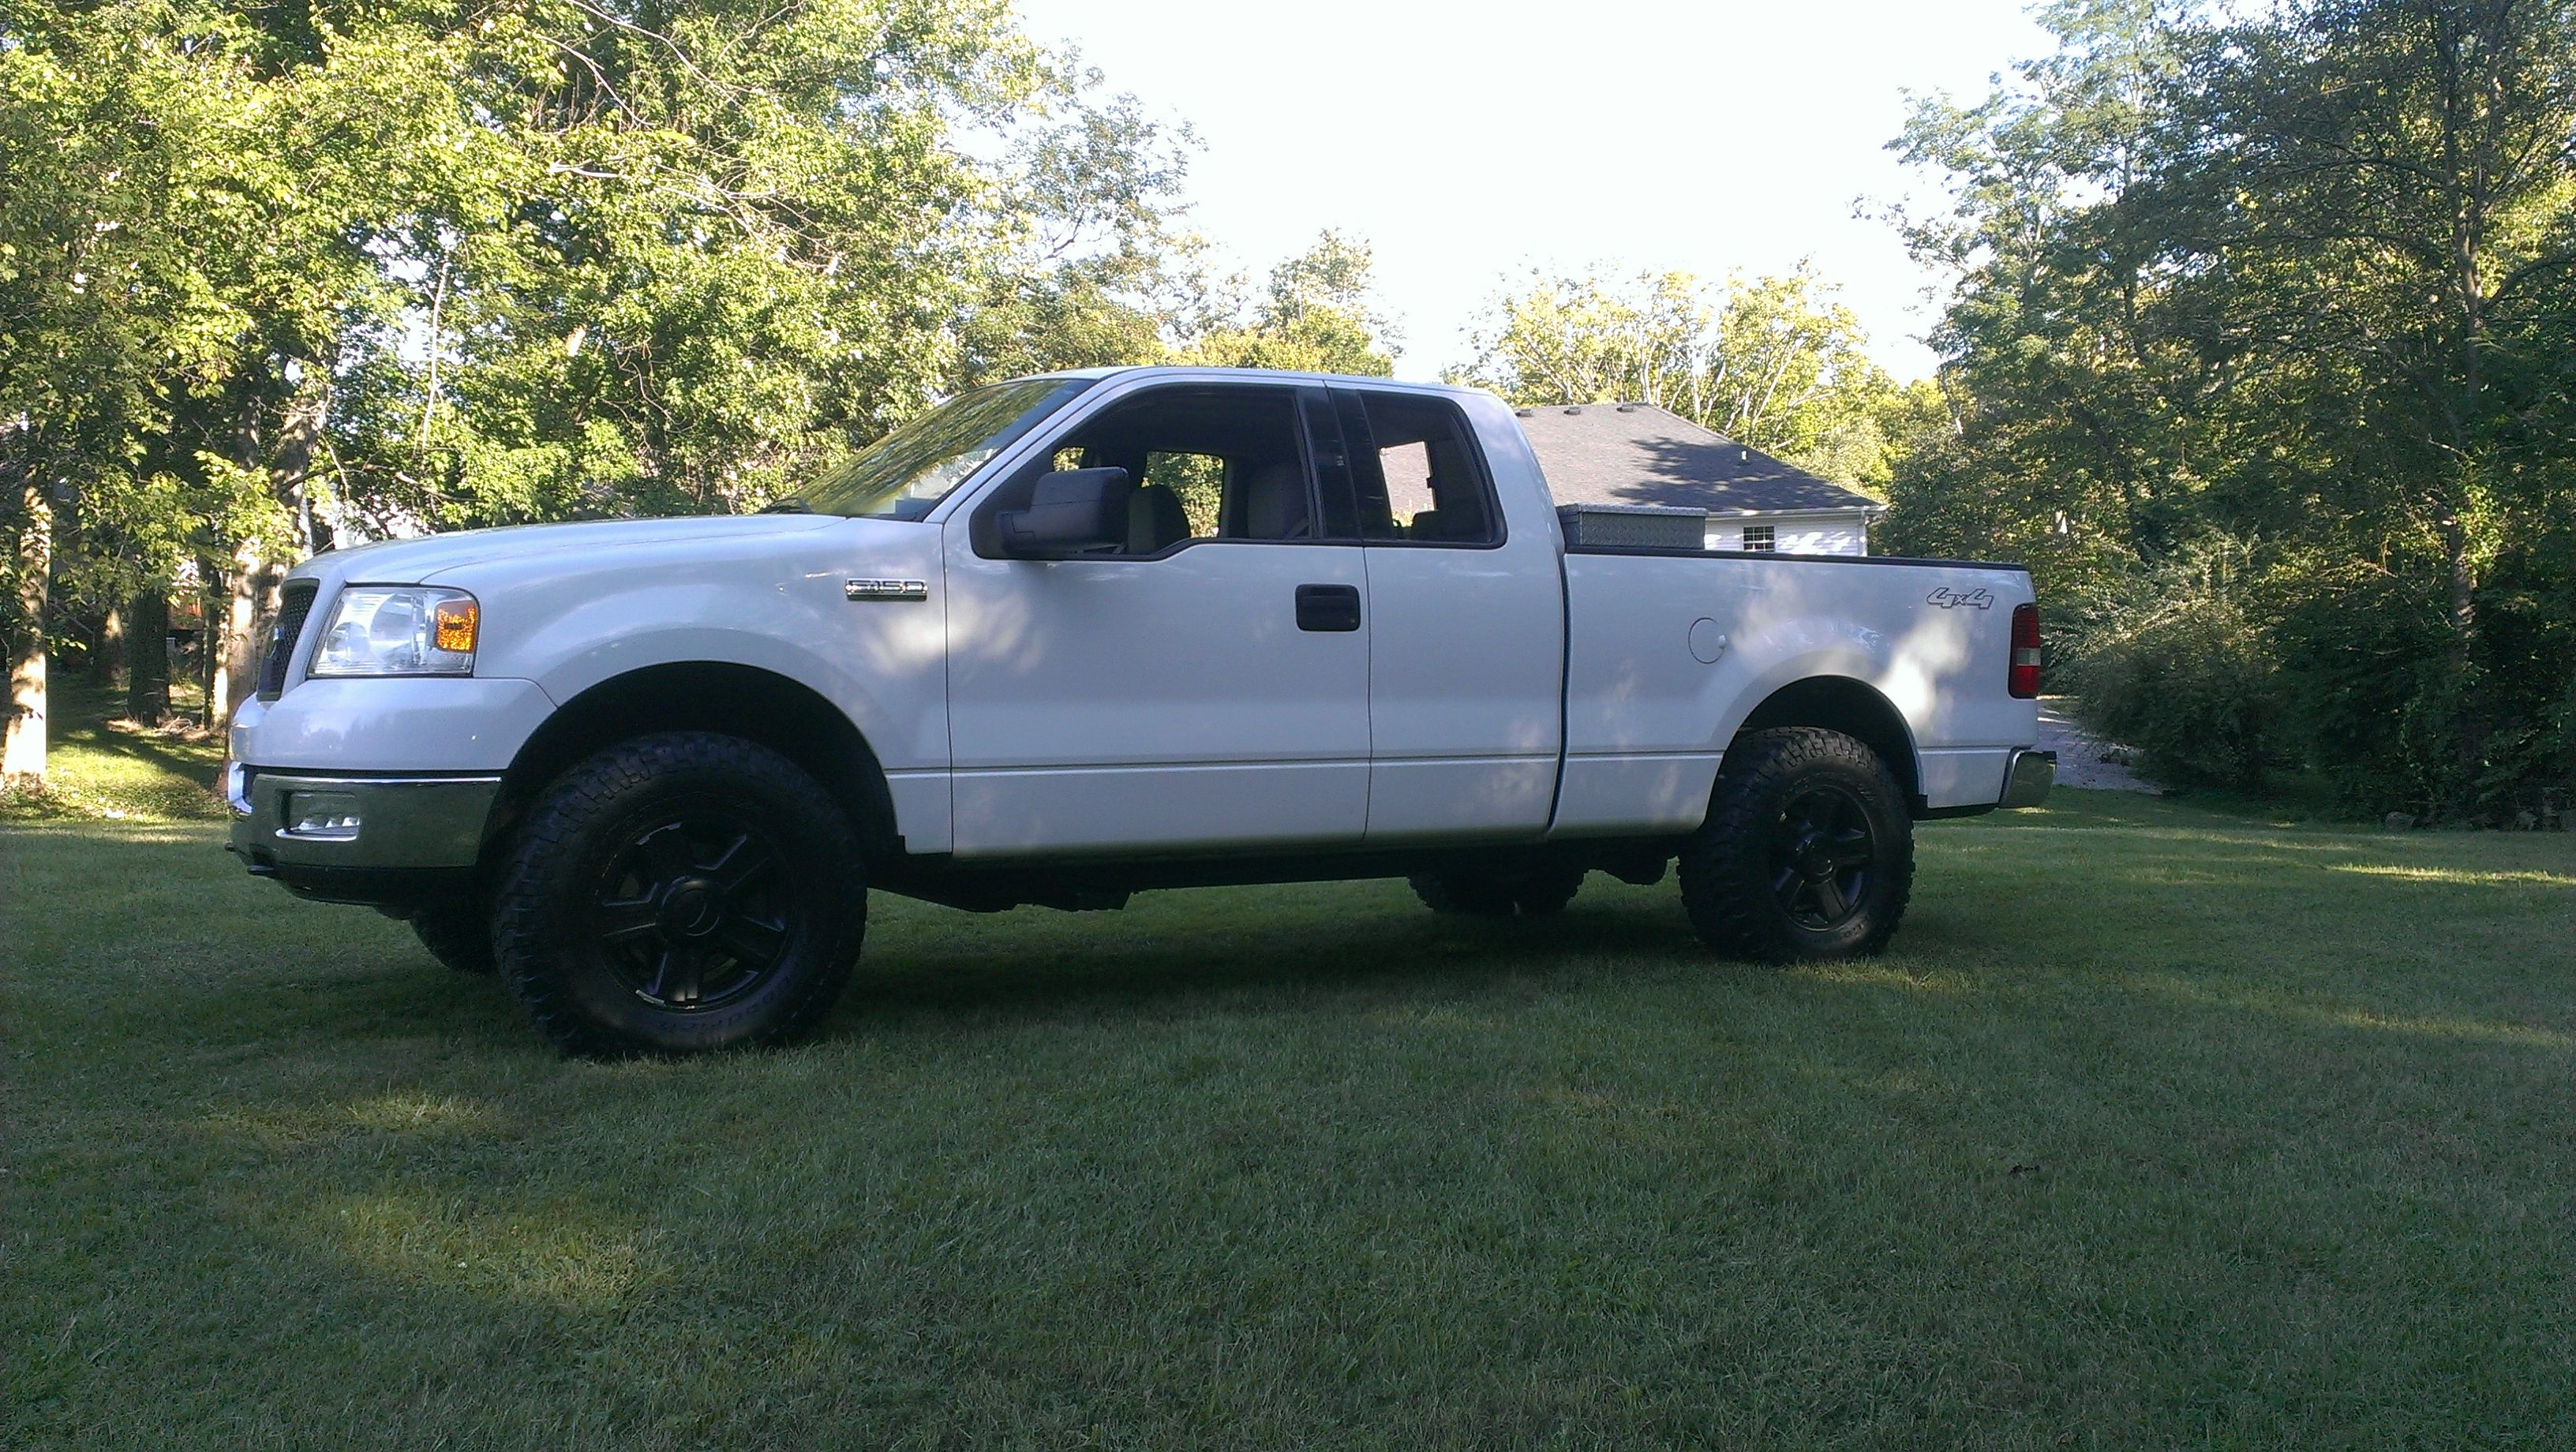 2004 f150 4x4 xlt 2 leveling kit 35 bfg mud terrains on painted stock